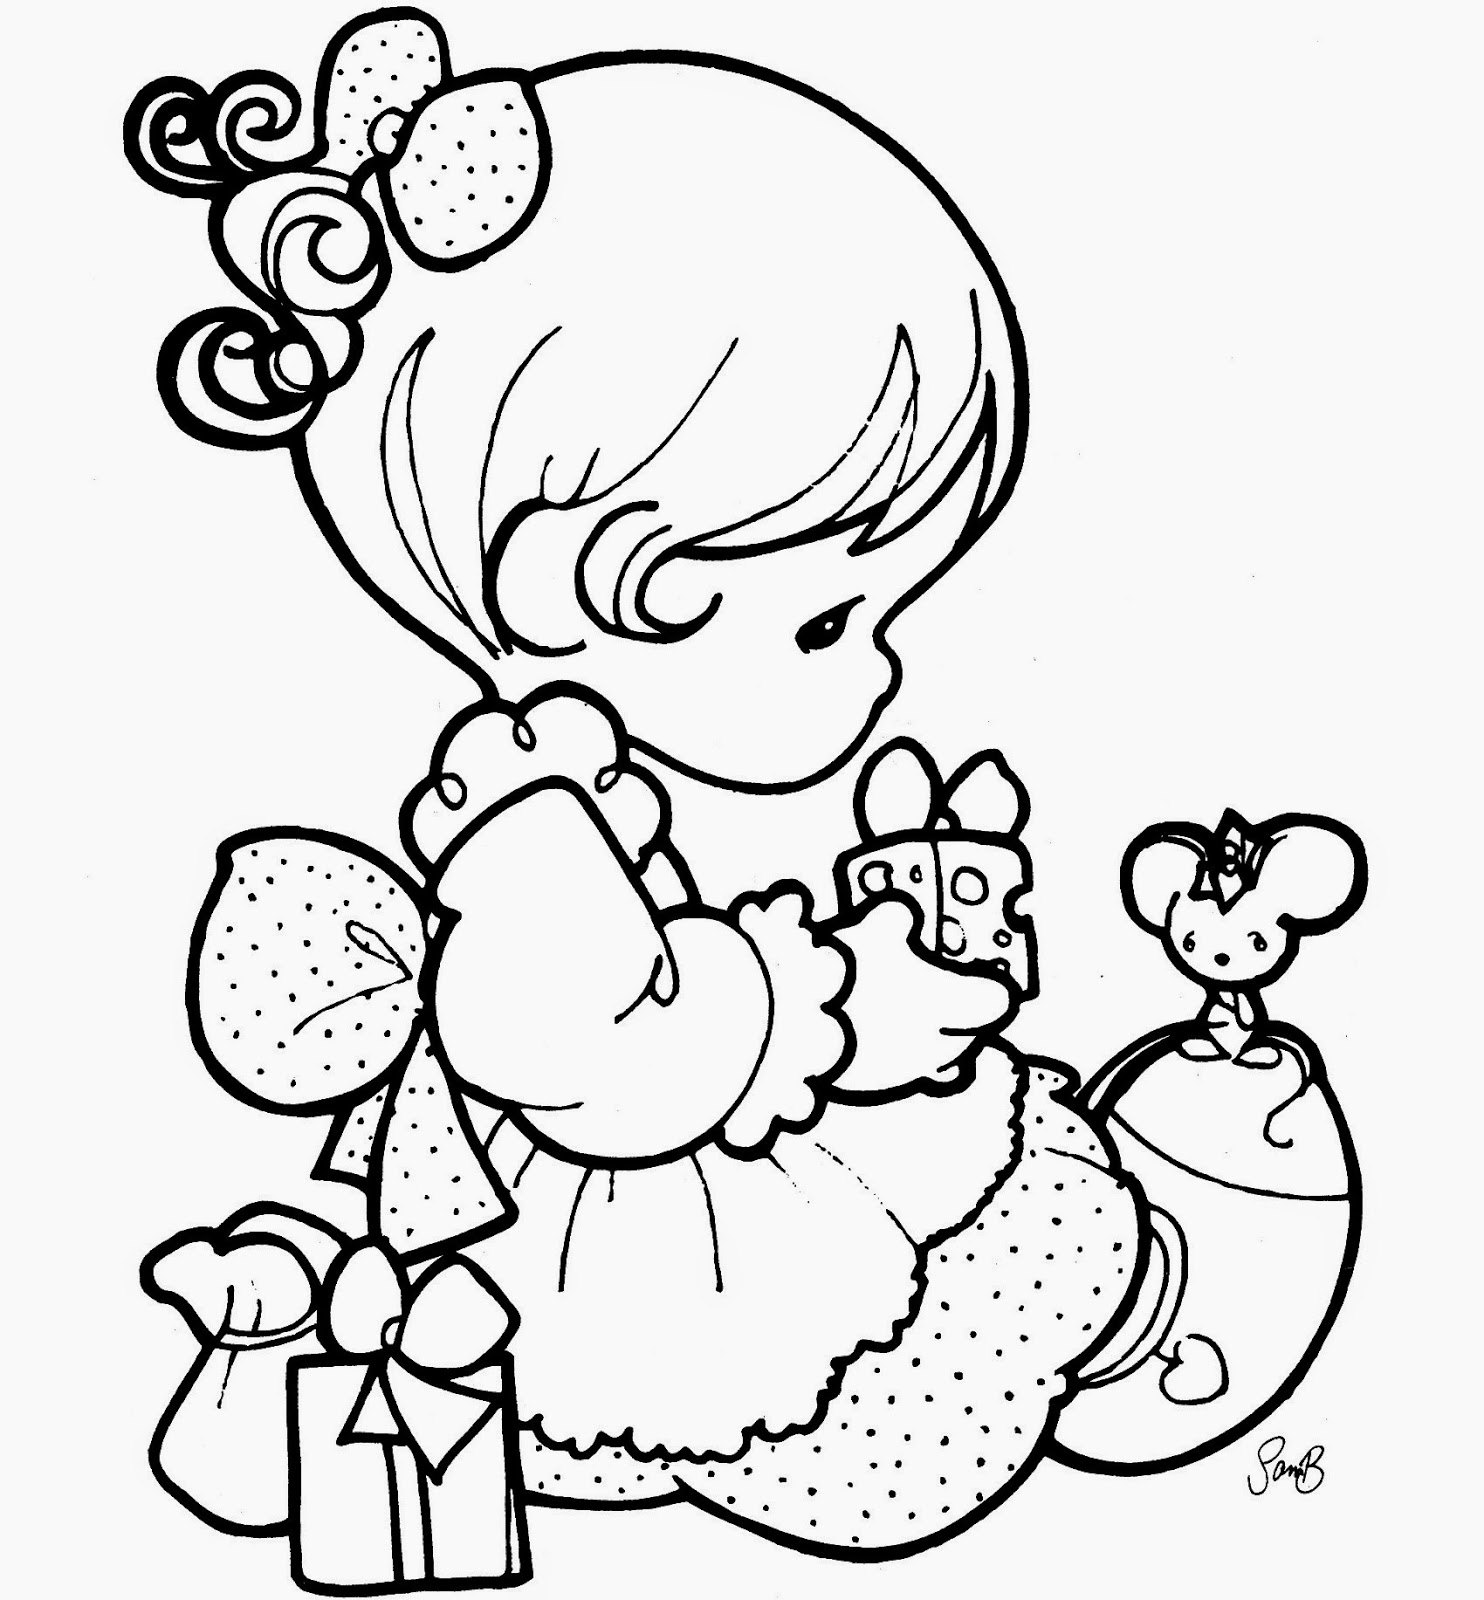 Beautiful precious moments girl coloring page for kids of a cute cartoon colour drawing hd wallpaper